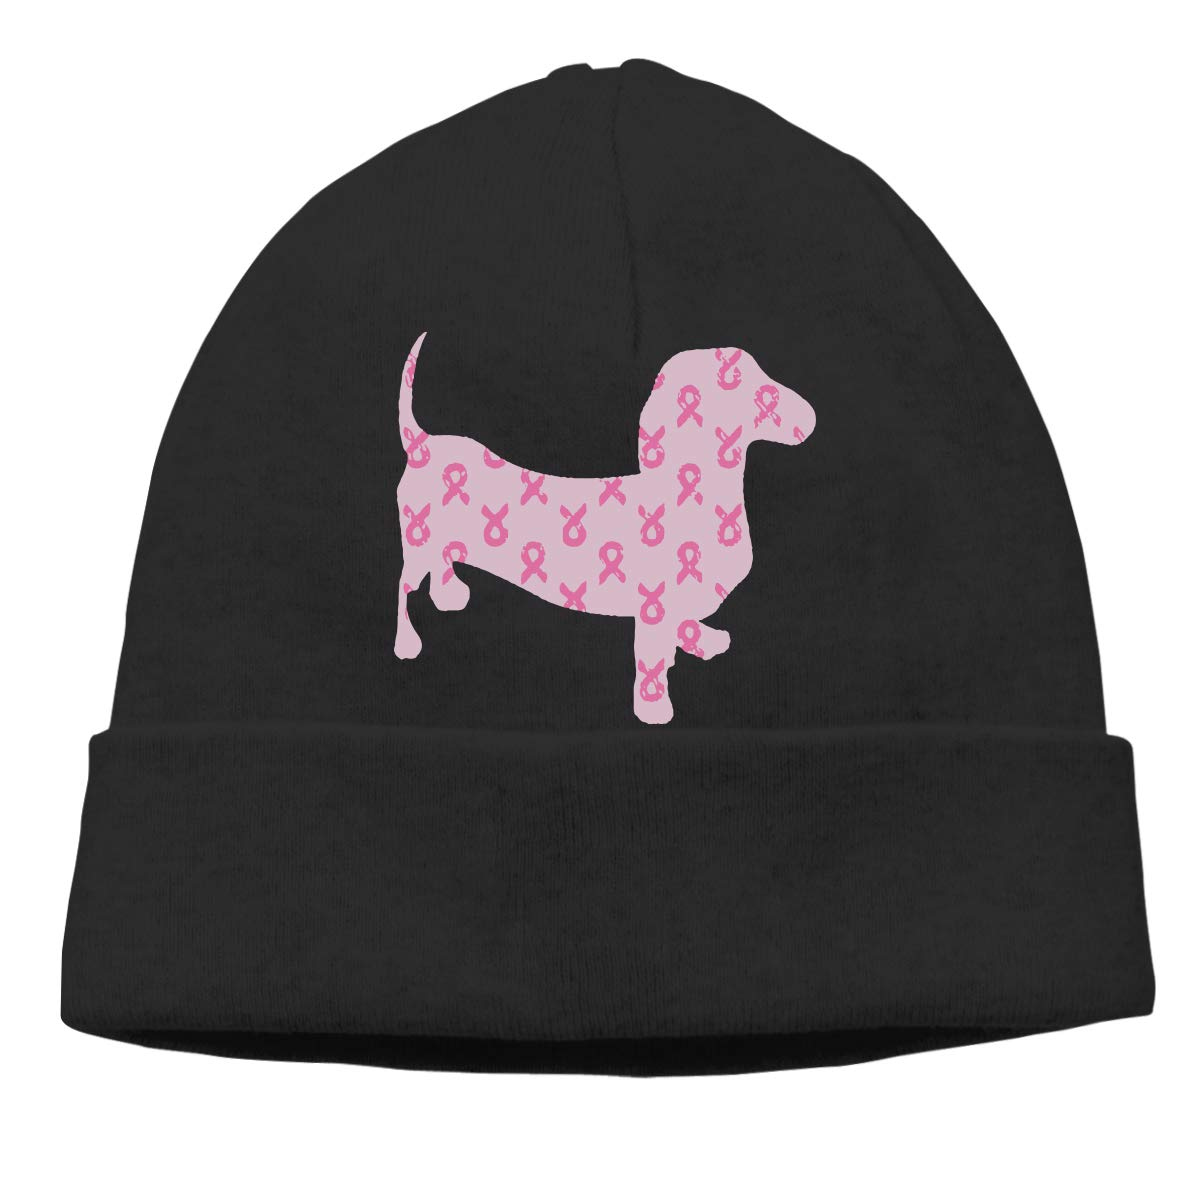 BF5Y3z/&MA Unisex Breast Cancer Awareness Dachshund Knitted Hat Winter Skiing Cap